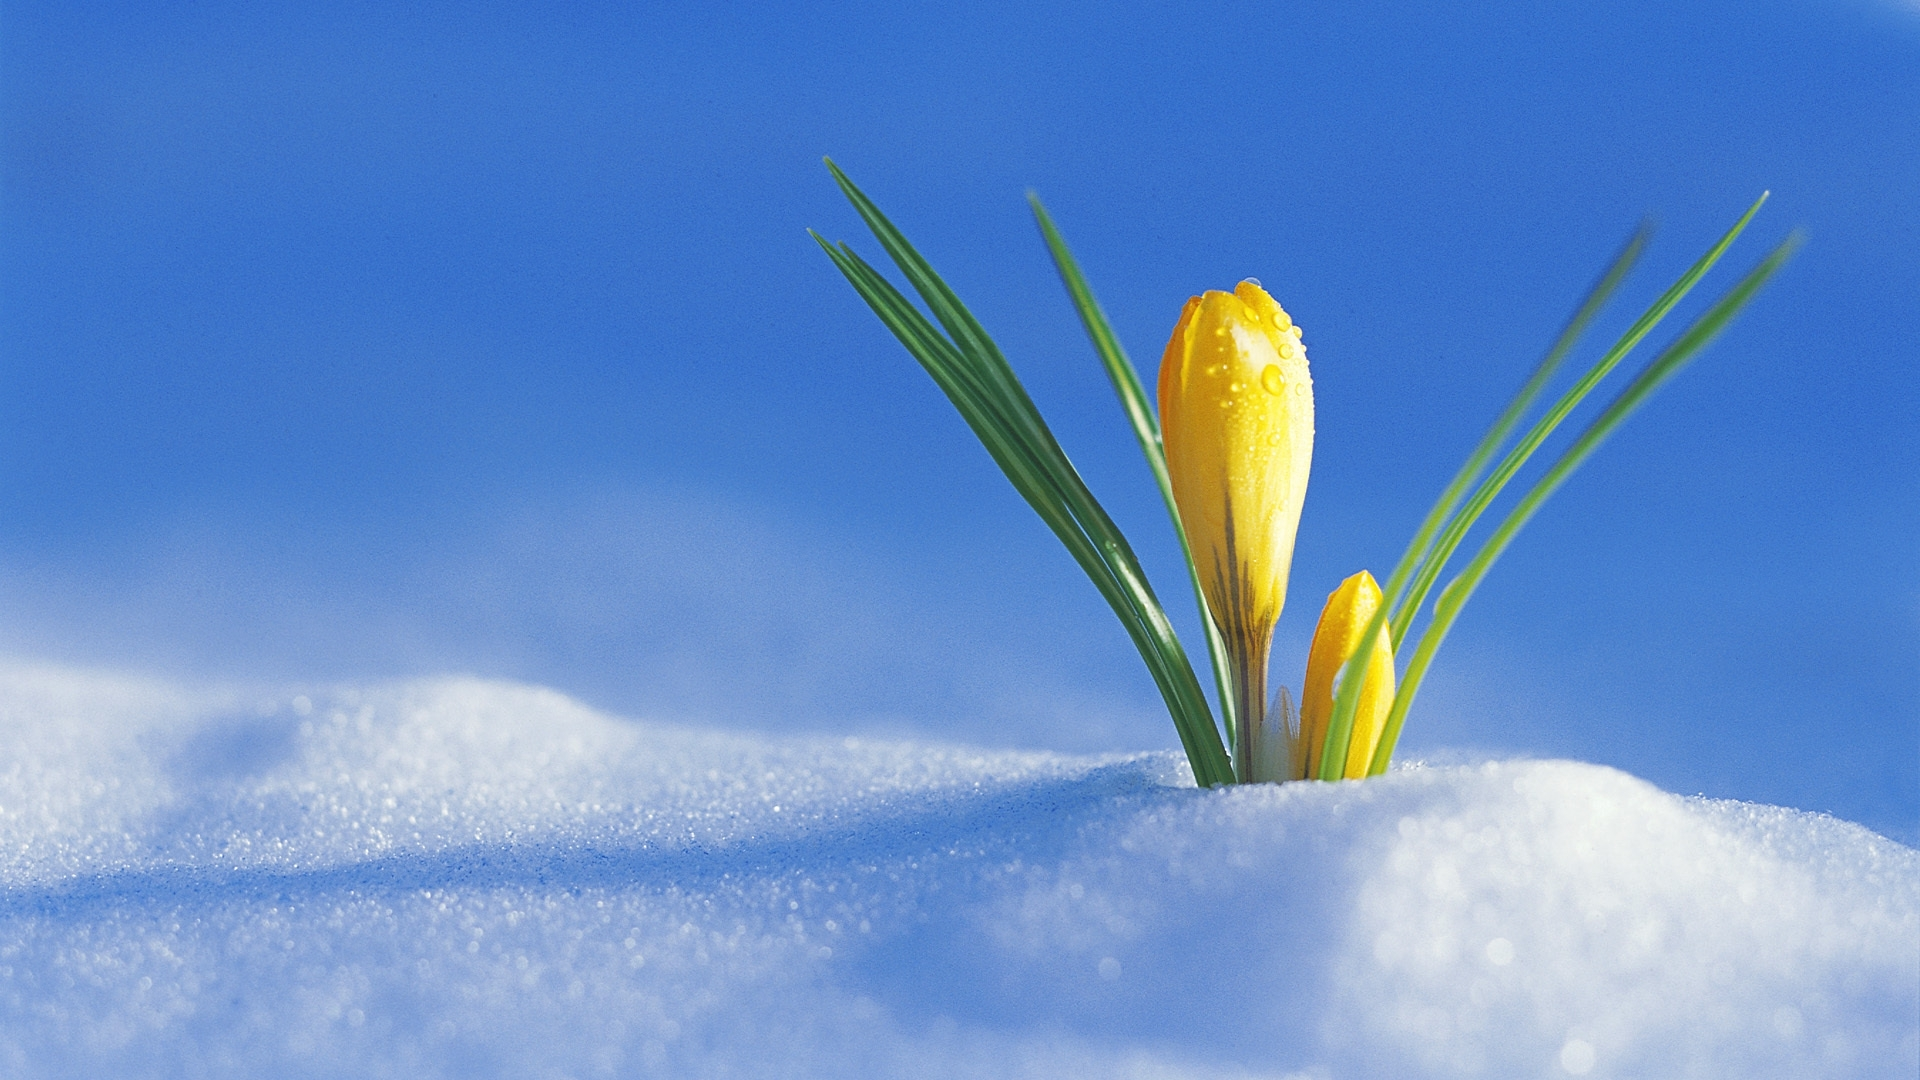 Crocus from snow